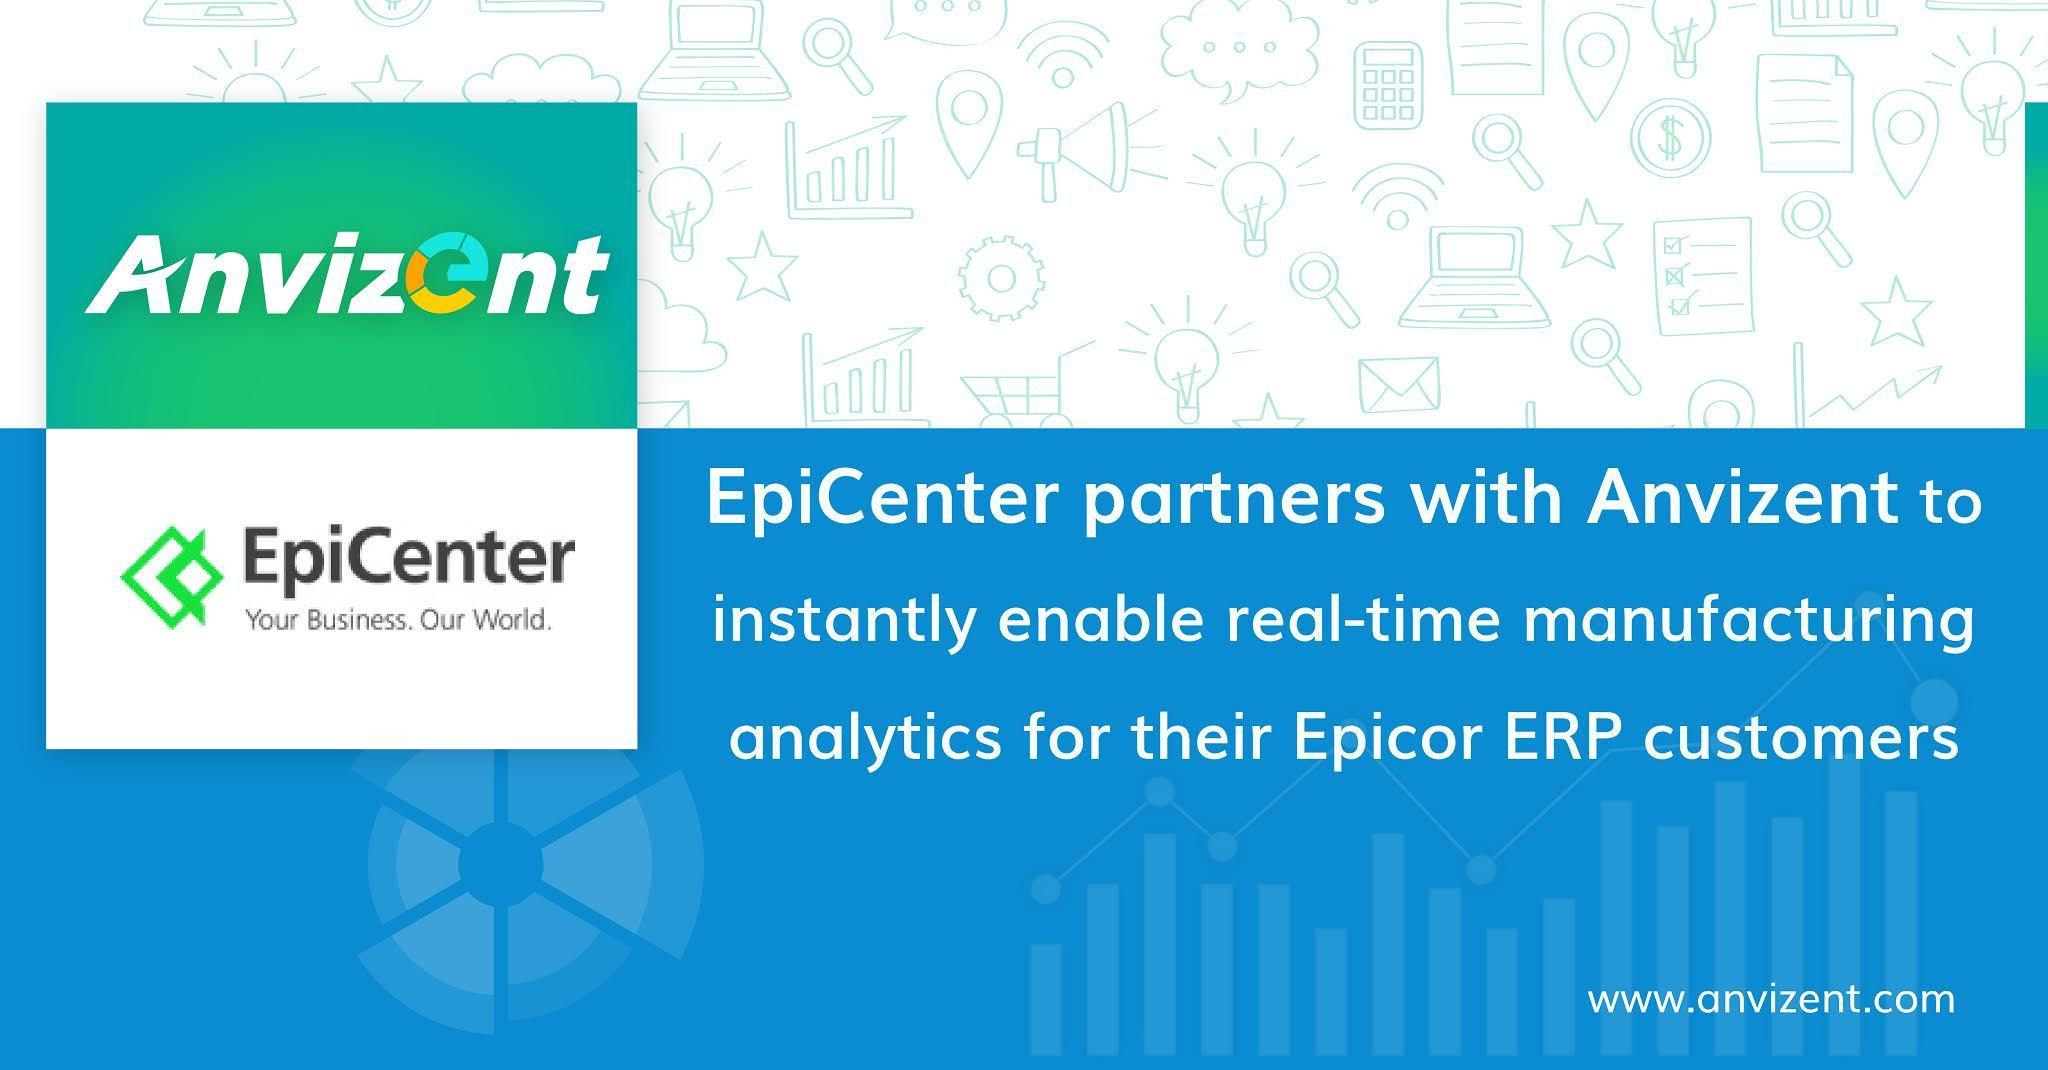 EpiCenter partners with Anvizent to instantly enable real-time manufacturing analytics for their Epicor ERP customers